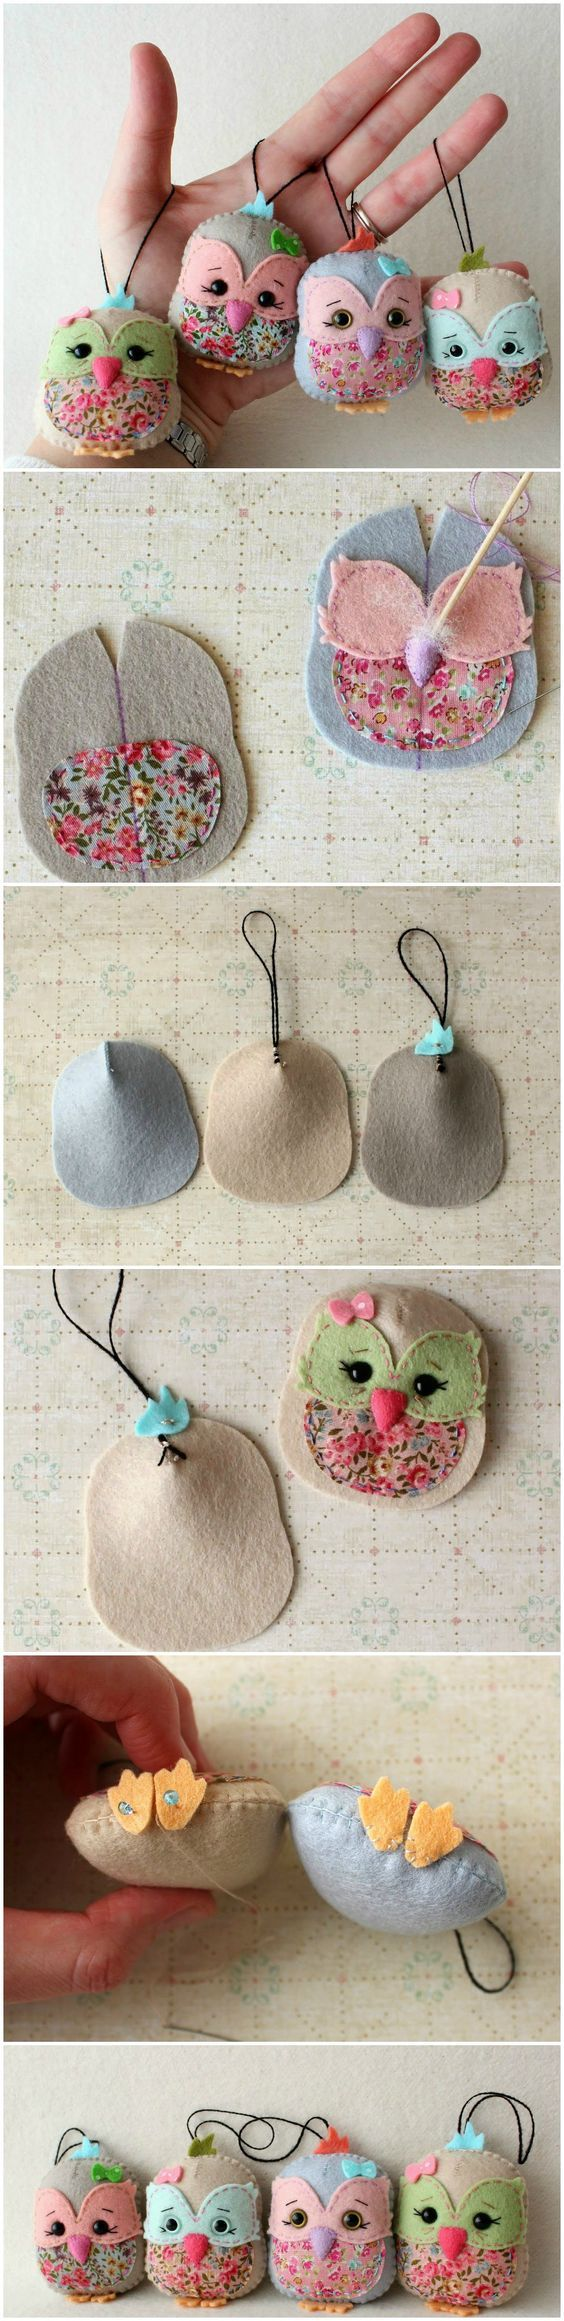 Gingermelon Dolls: Free Pattern – Little Lark Lavender Sachet: